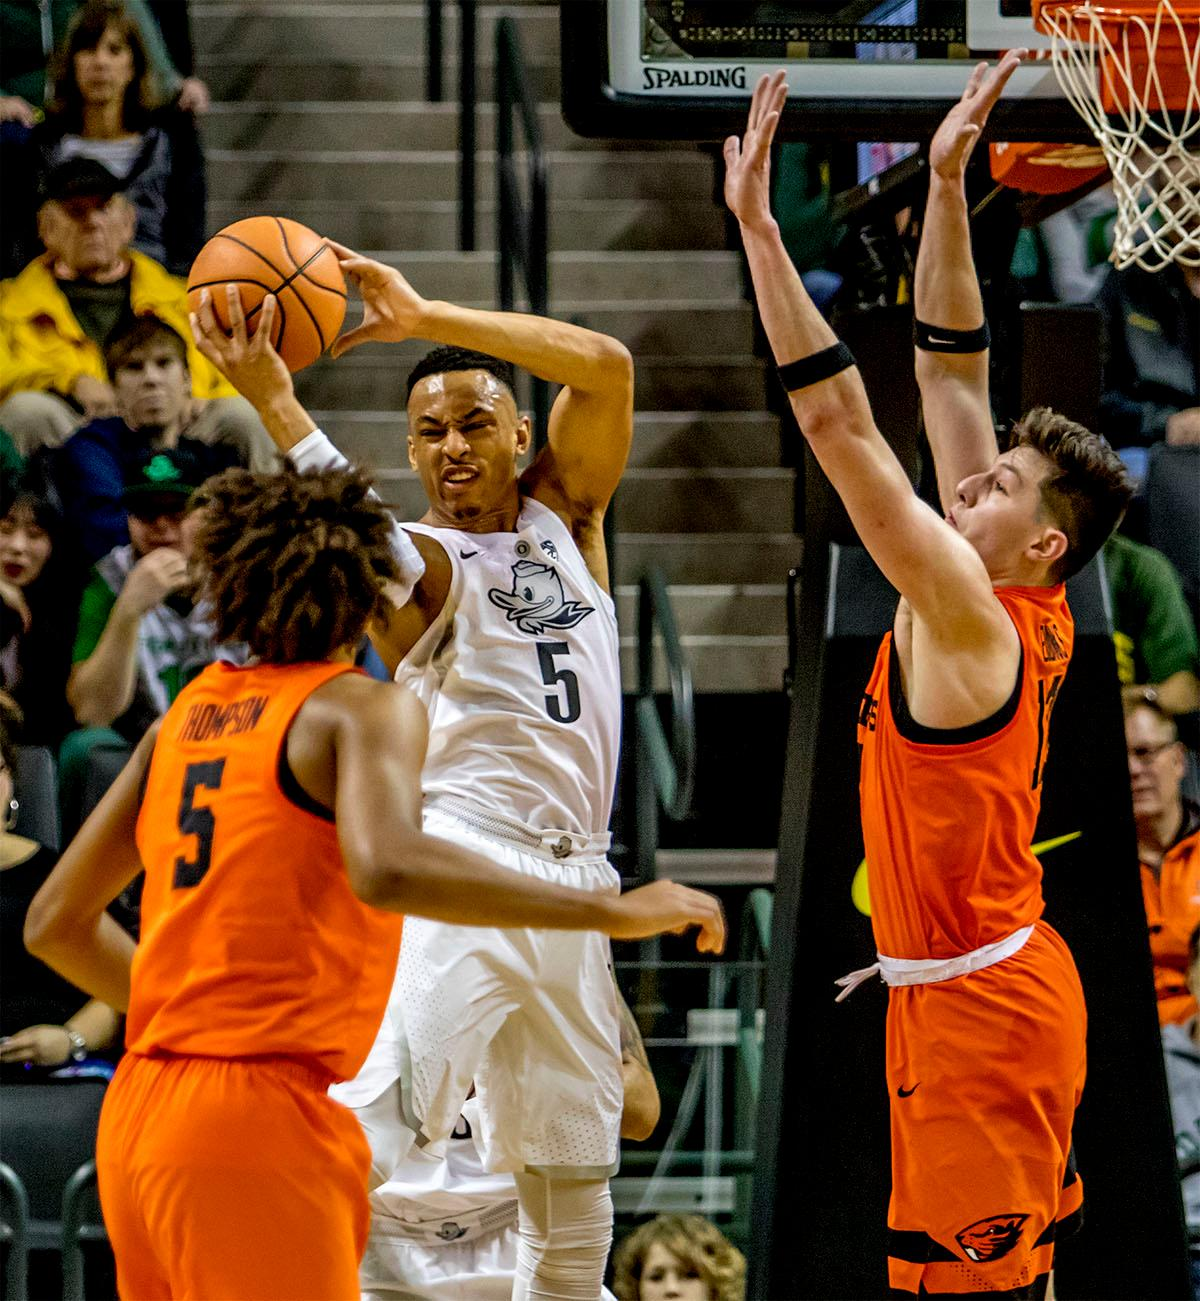 The Duck's Elijah Brown (#5) makes the rebound against the Beavers. The Ducks defeated the Beavers in the civil war game, 66-57, at Matthew Knight Arena on Saturday night. Elijah Brown scored a game high of 20 points with 18 of the points coming in the first half, Paul White added 17 points. The Ducks are now 14-7 overall and 4-4 in conference play. The Ducks will next face California on Thursday Feb. 1 at 6:00 p.m. Photo by August Frank, Oregon News Lab